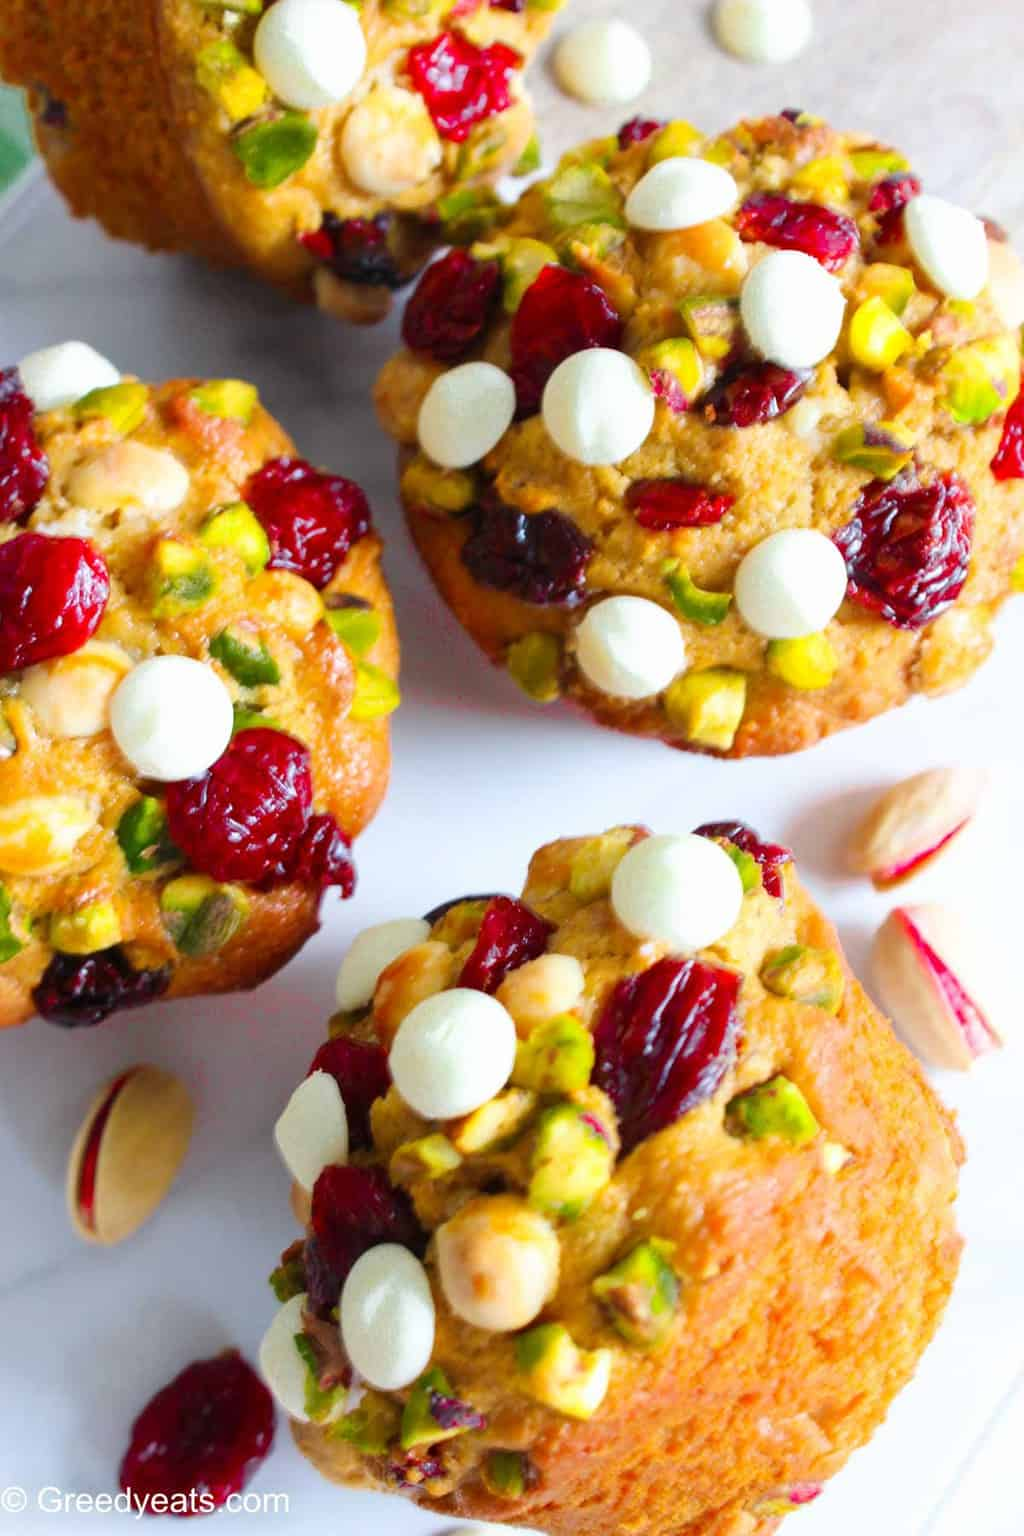 Orange cranberry muffins are the best way to start your day on a chilly fall morning.